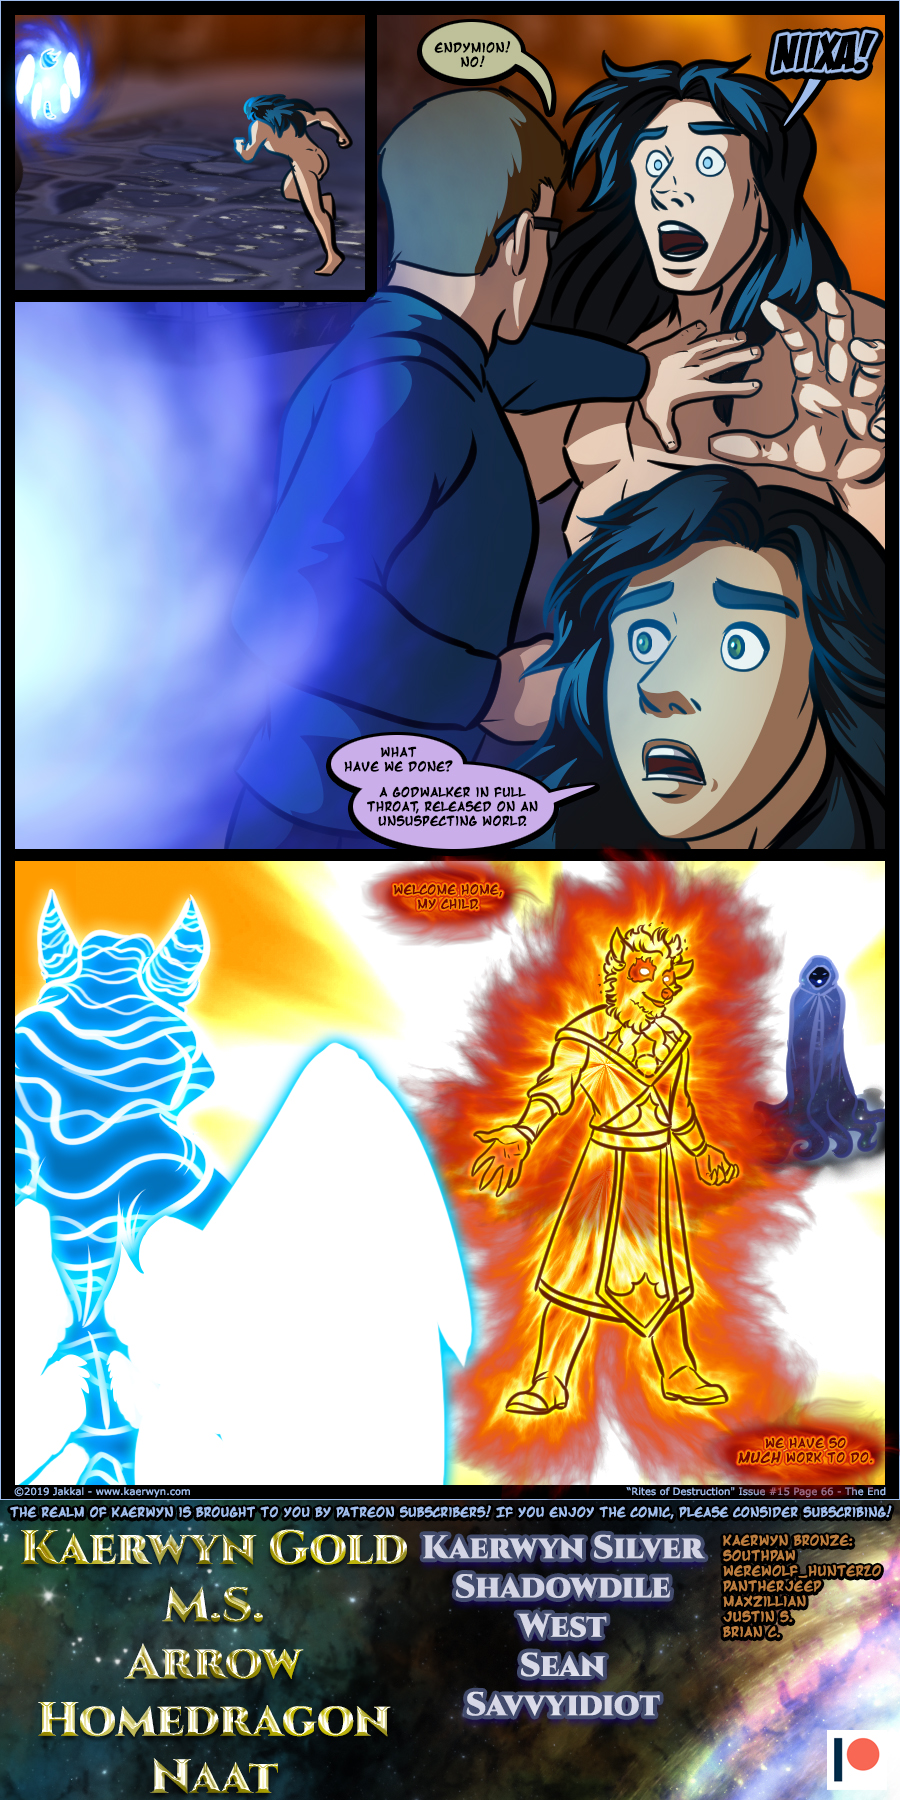 Issue 15 Page 66 - The End